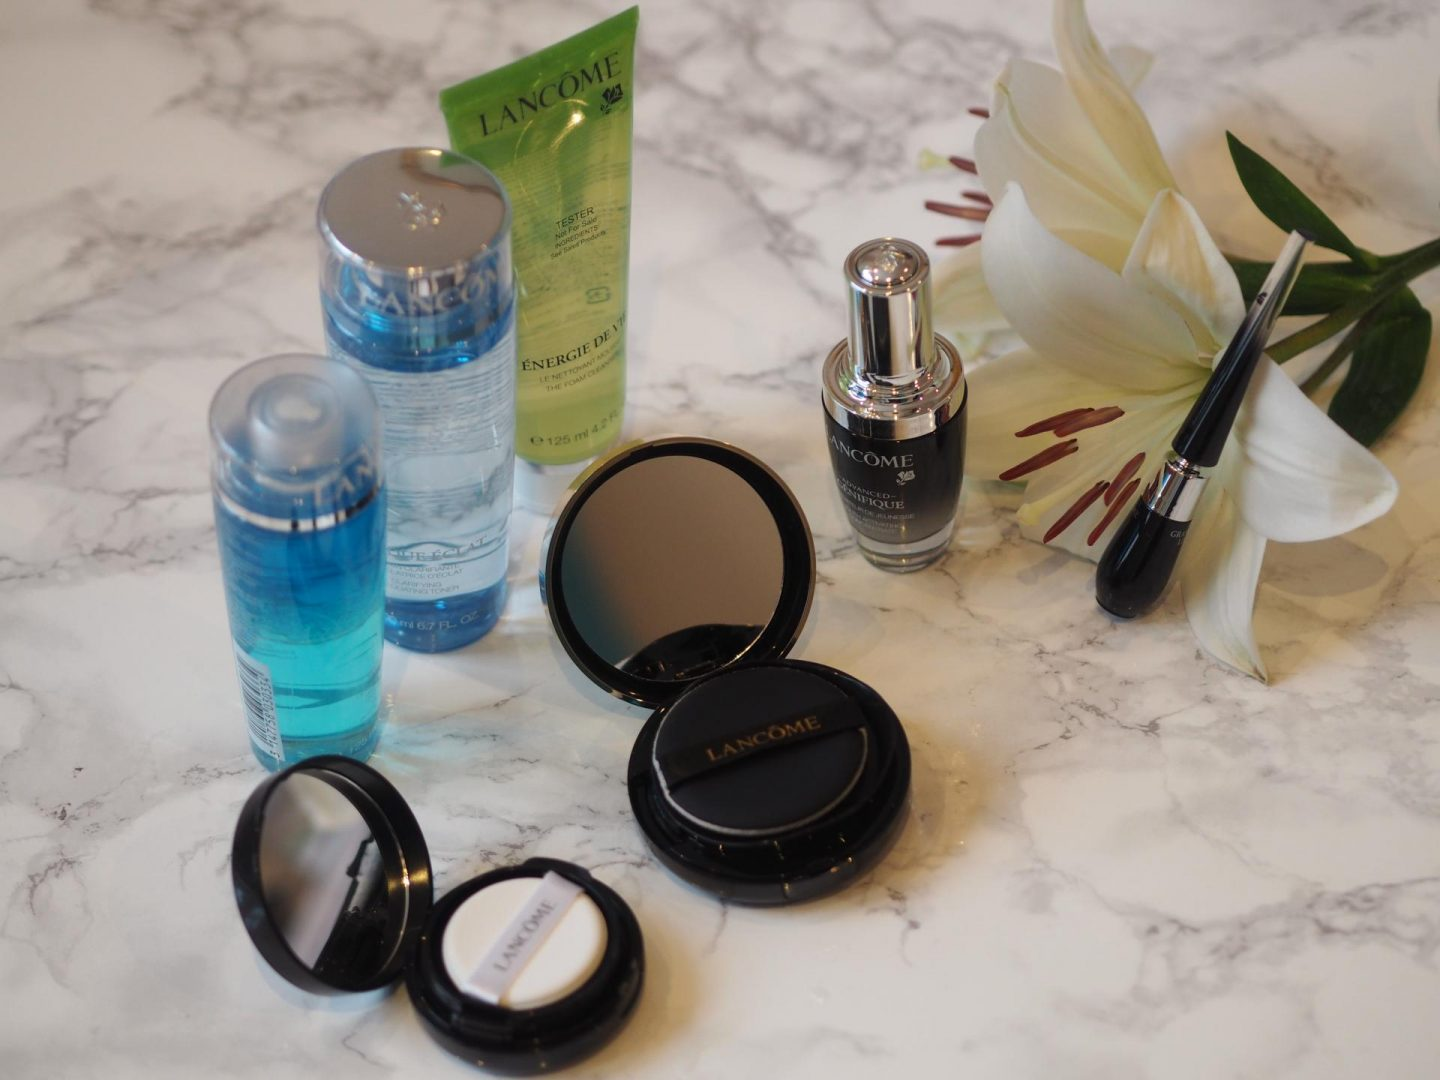 Lancôme products